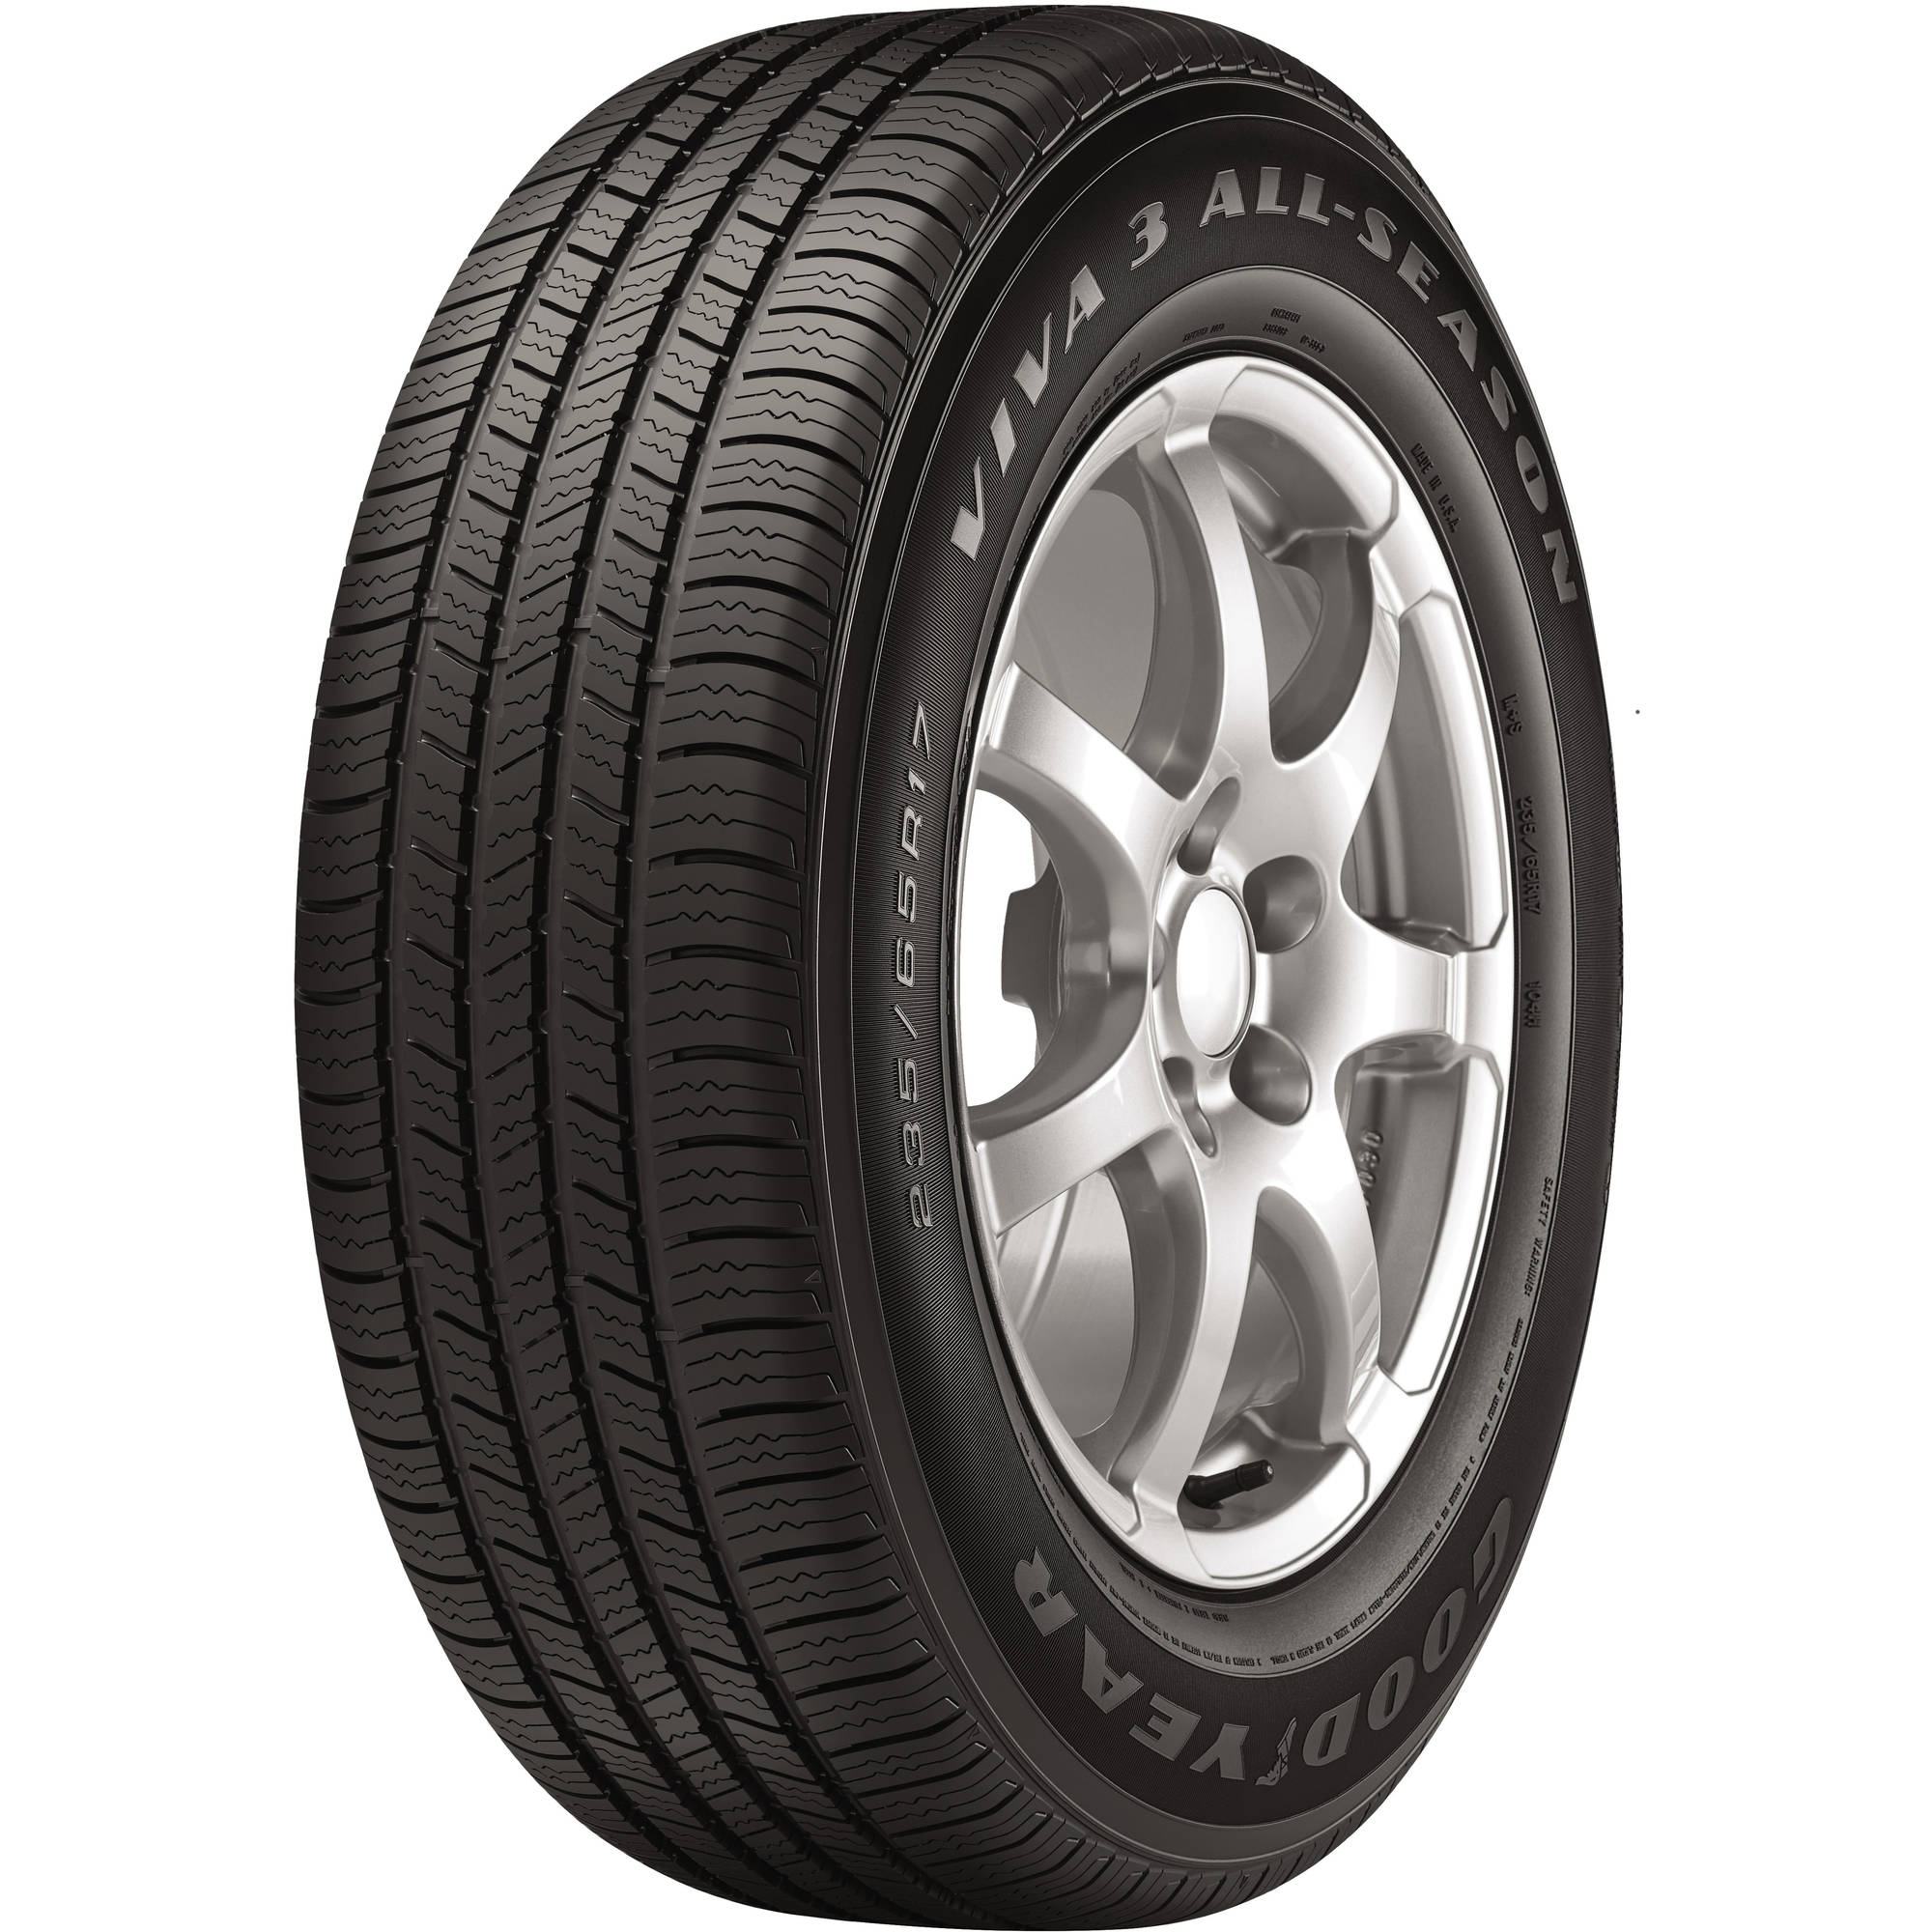 Goodyear Viva 3 All-Season Tire 205/70R15 96T